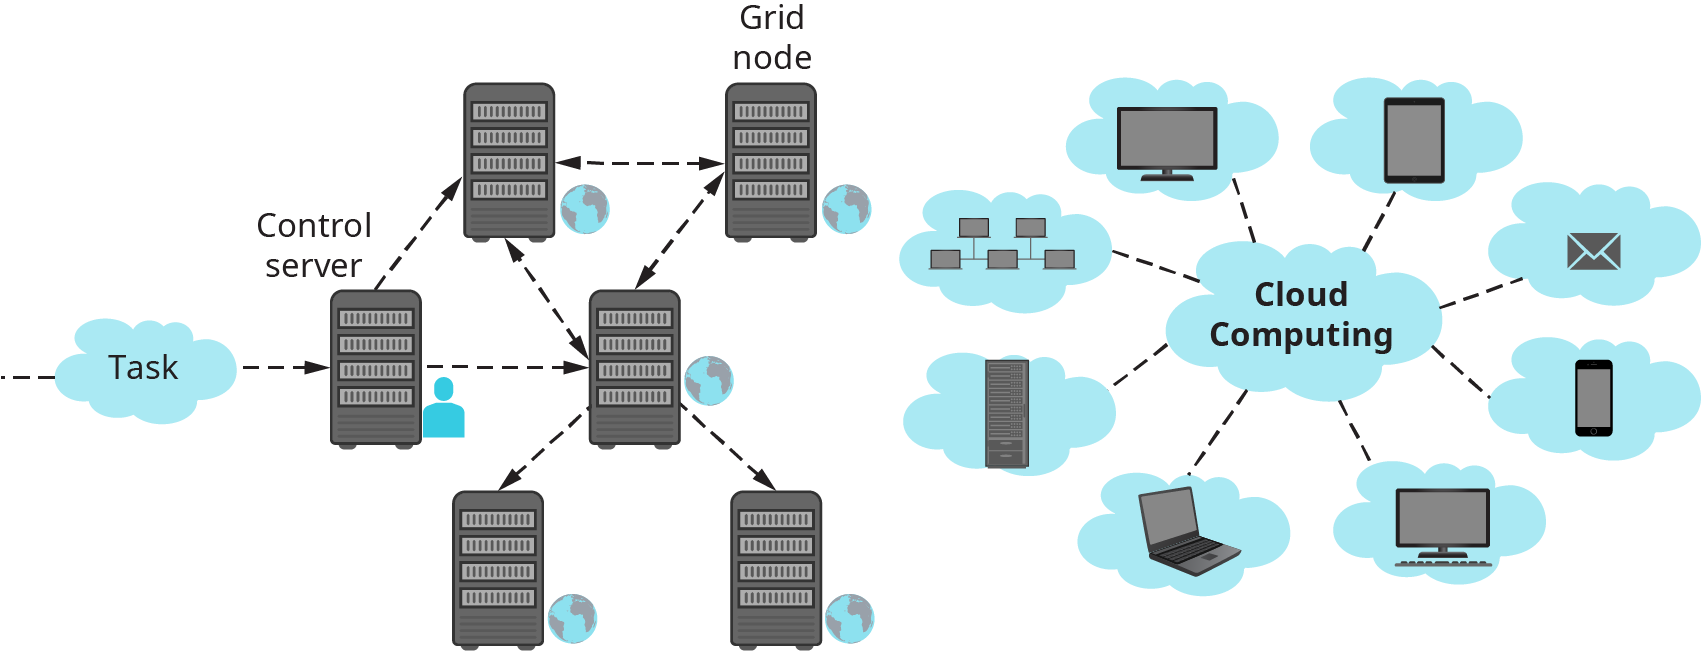 In grid computing, a task is sent to a control server, then bounced back and forth between servers around the globe. With cloud computing, multiple devices, such as laptops, cell phones, networks, all connect to a single cloud source.